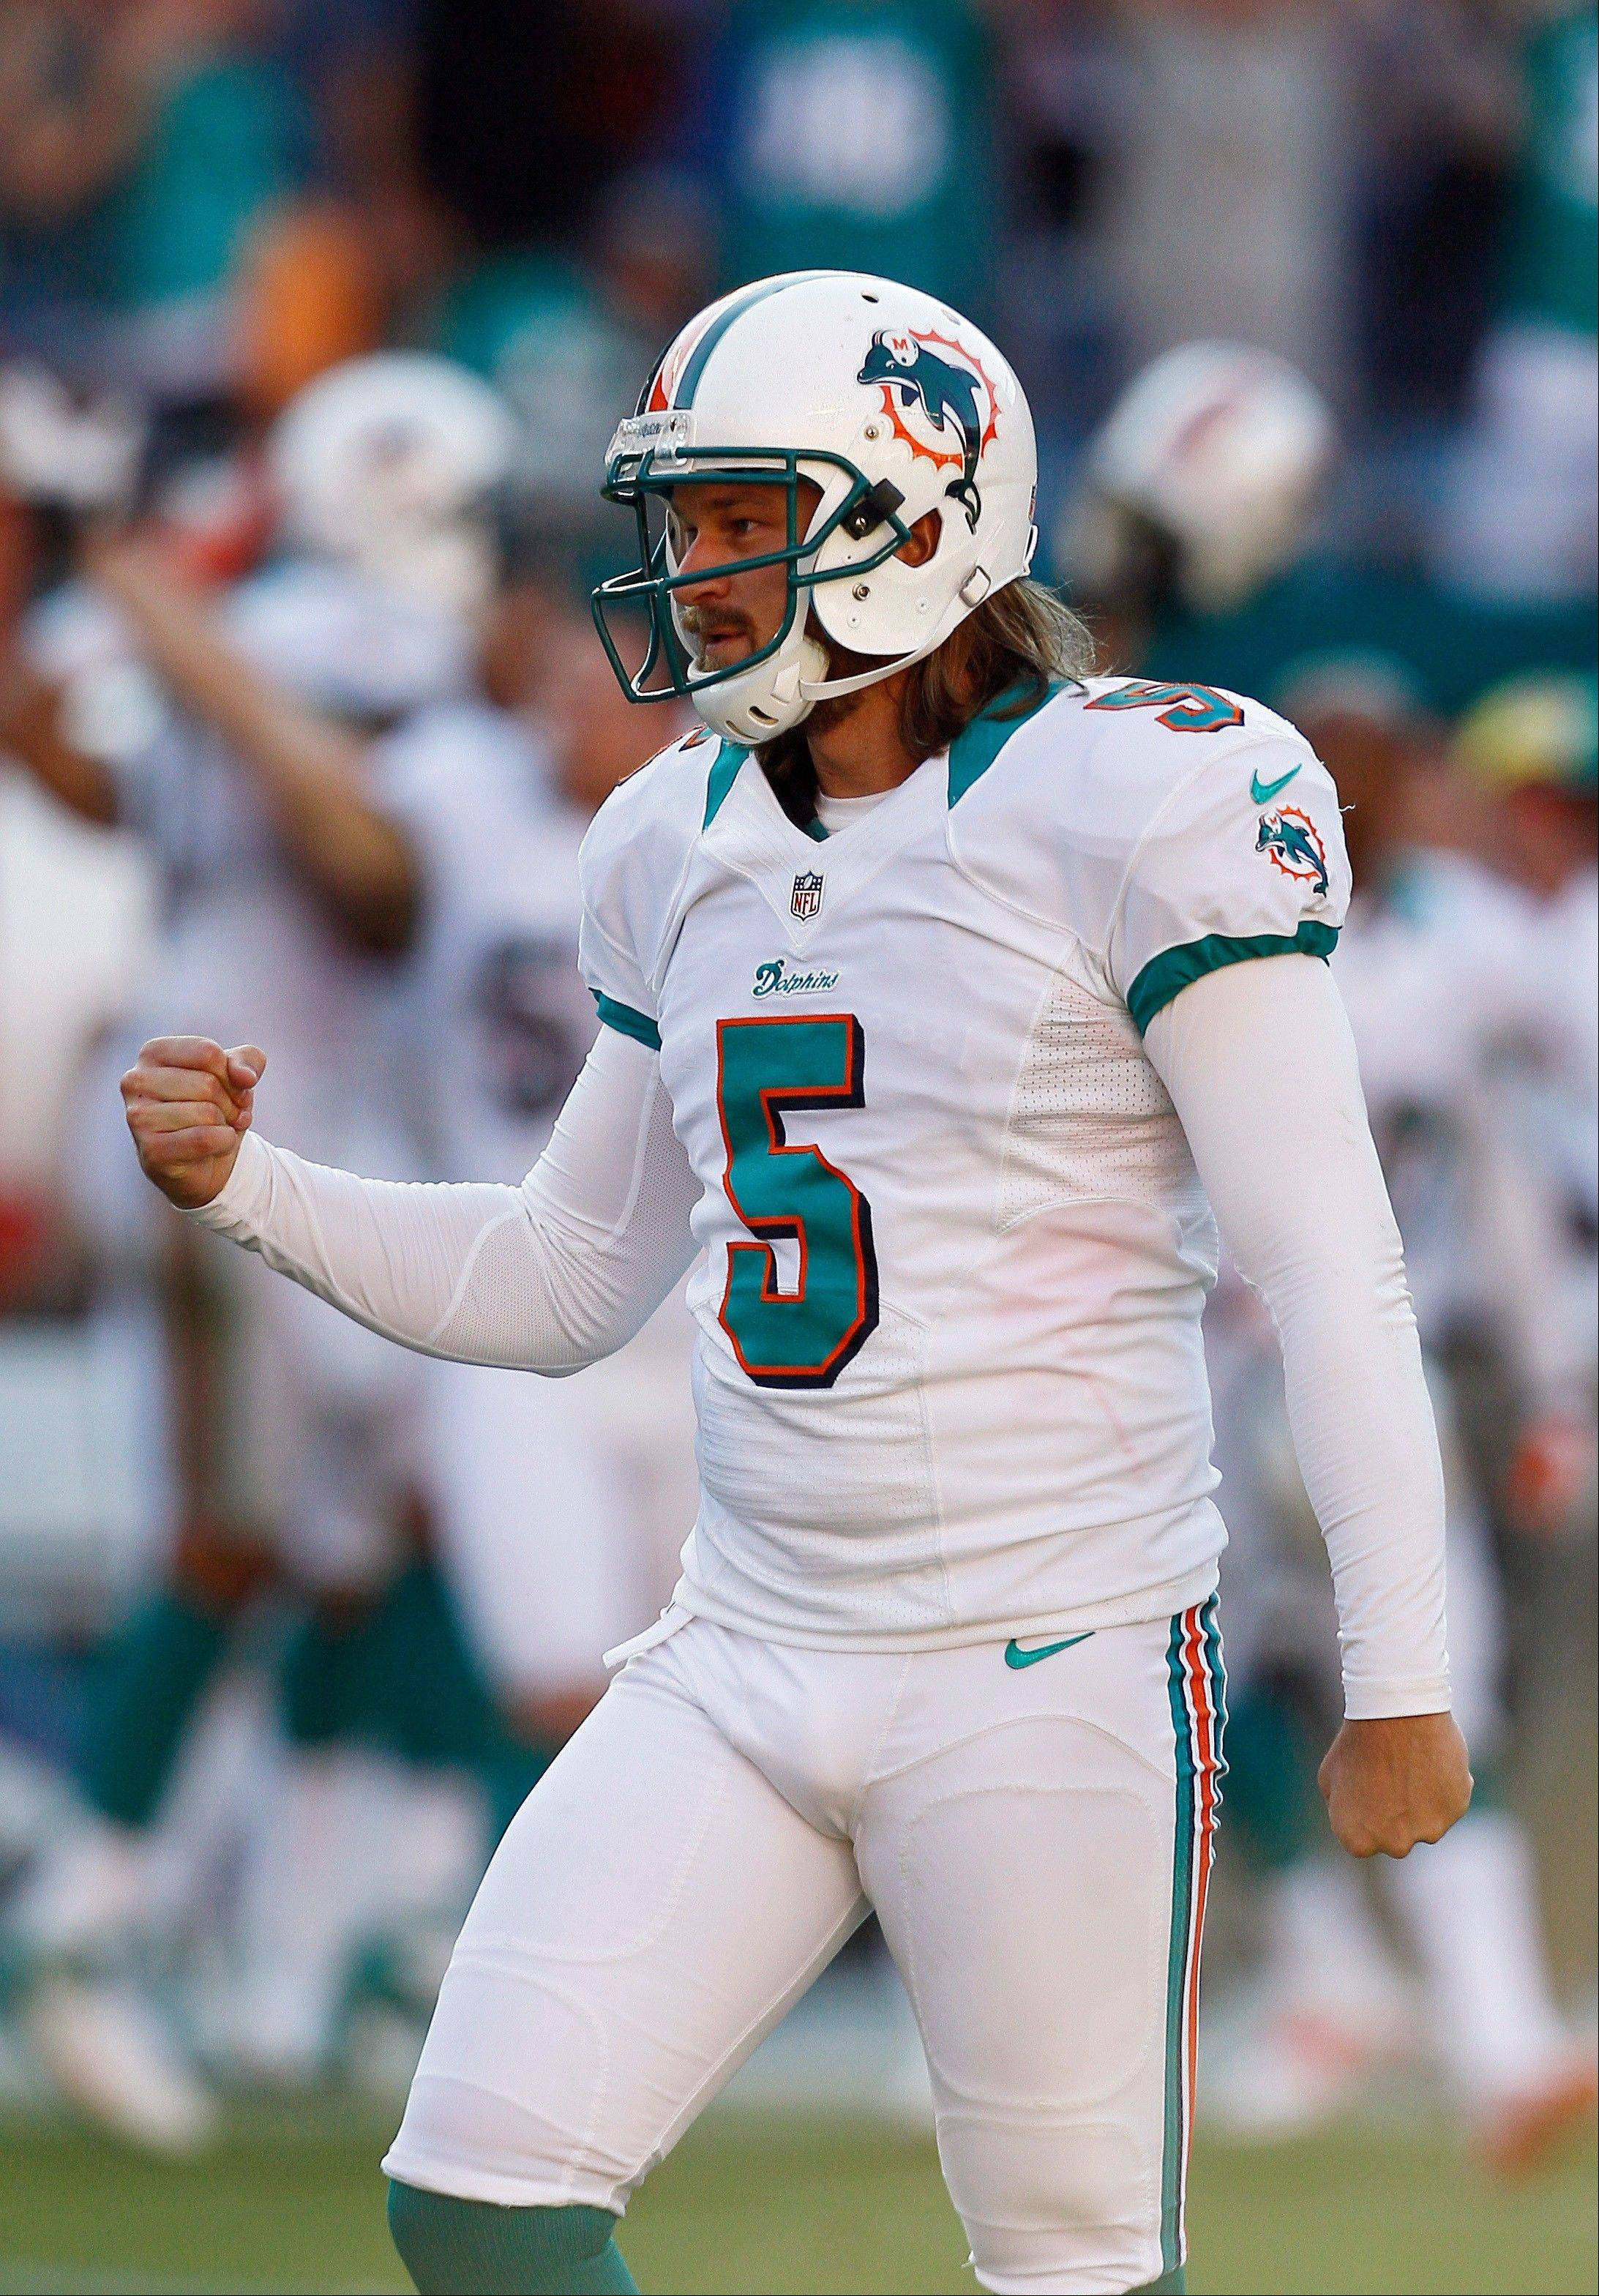 Miami kicker Dan Carpenter celebrates his game-winning field goal against Seattle on Sunday at home.